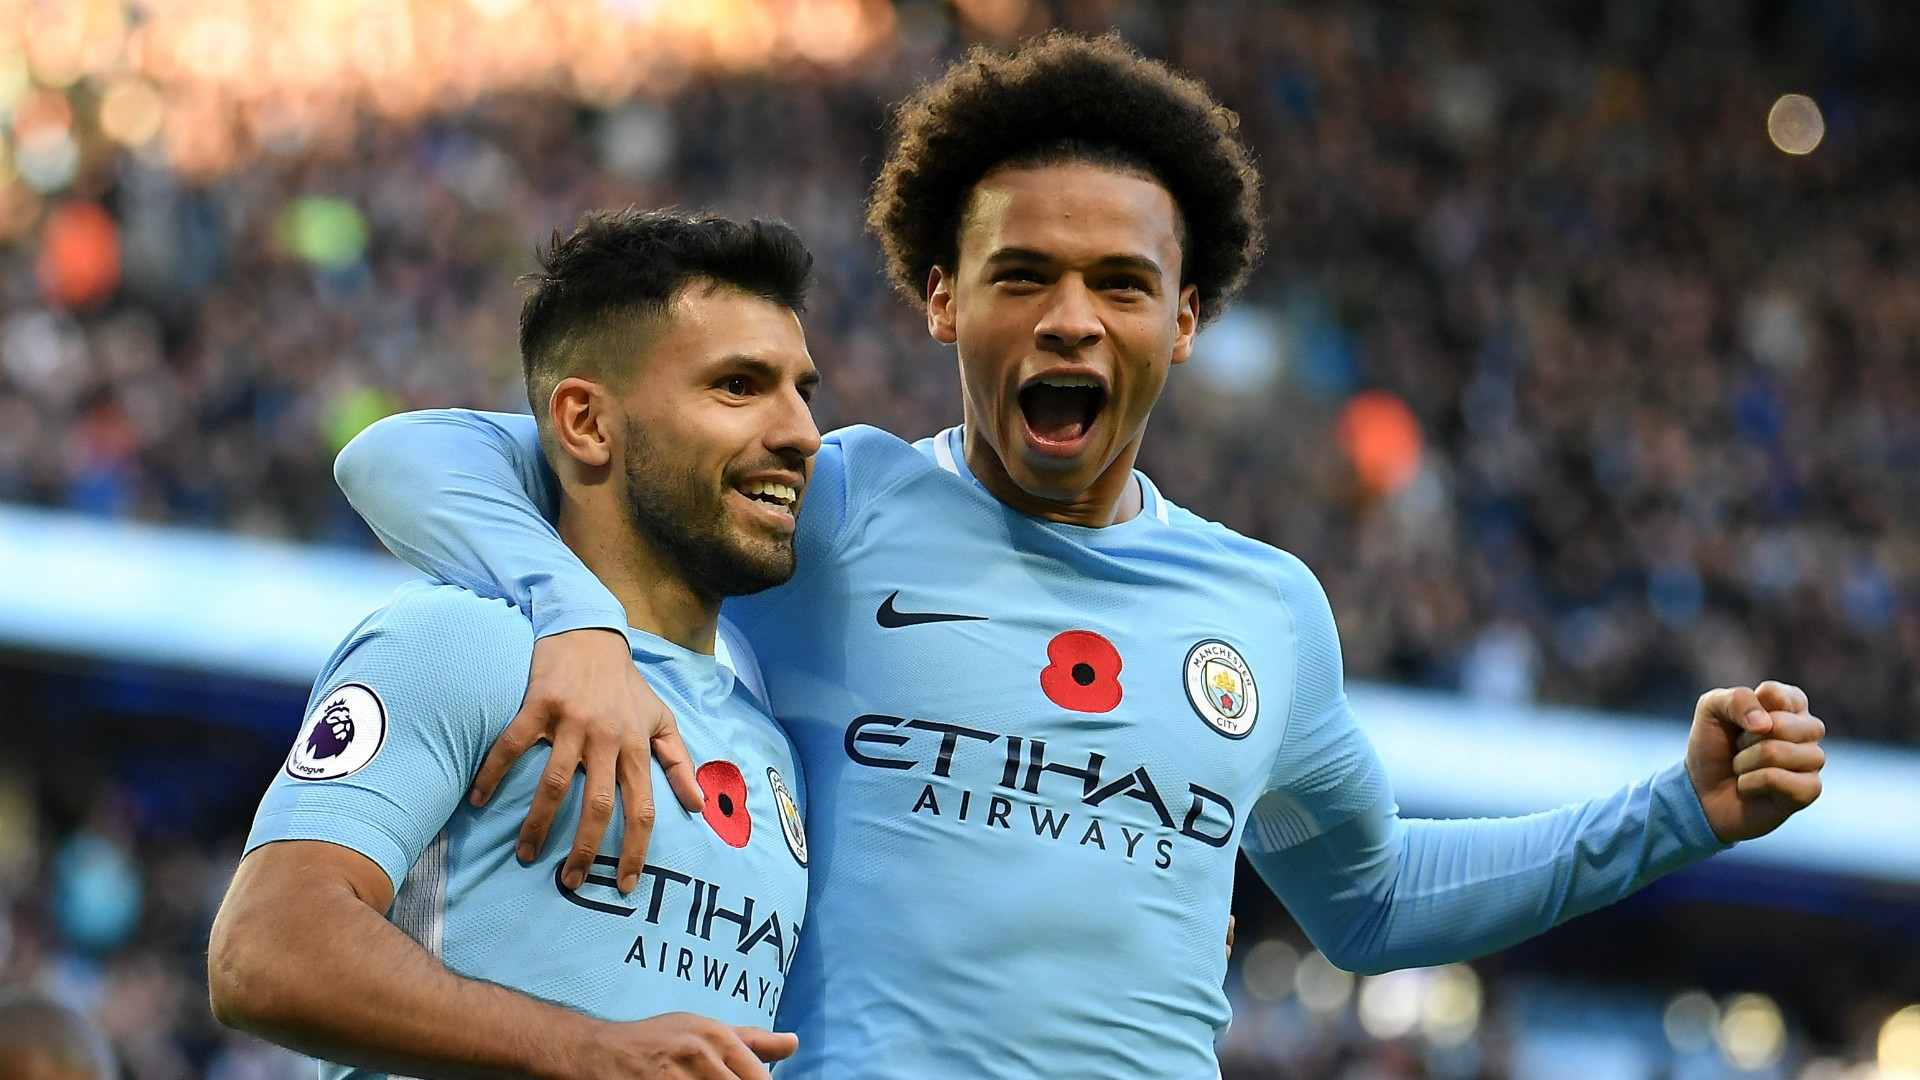 https://images.performgroup.com/di/library/GOAL/f7/6a/leroy-sane-sergio-aguero-manchester-city_120sxqeh7xruz1ucn92ktyvotg.jpg?t=-1010193017&quality=90&w=0&h=1260